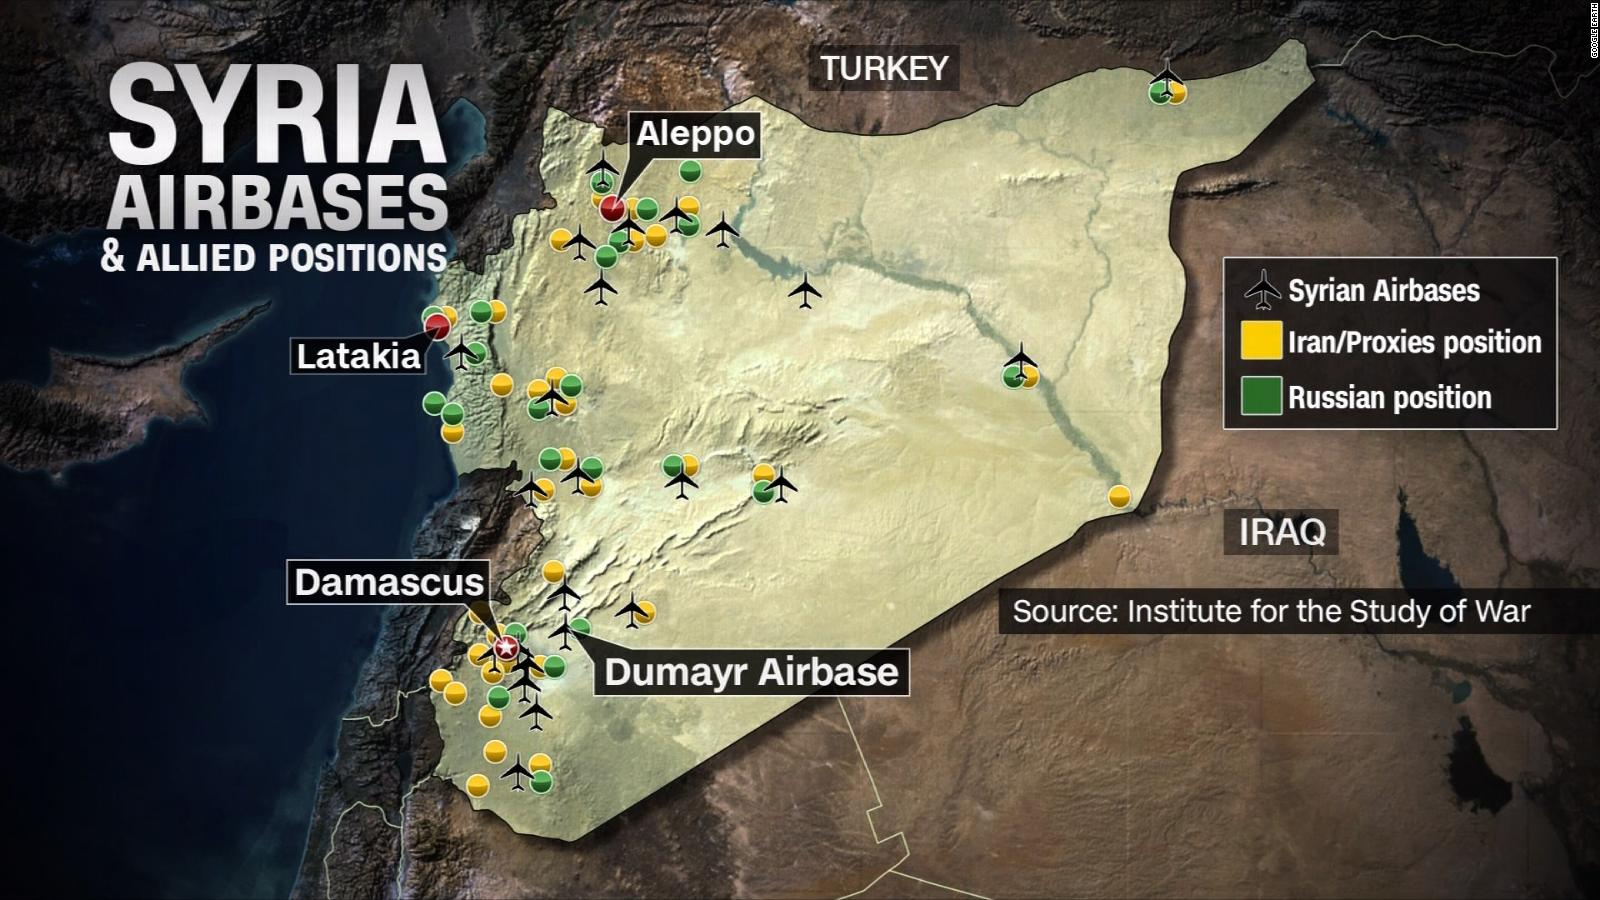 The challenge for us with russia in syria cnn video gumiabroncs Gallery